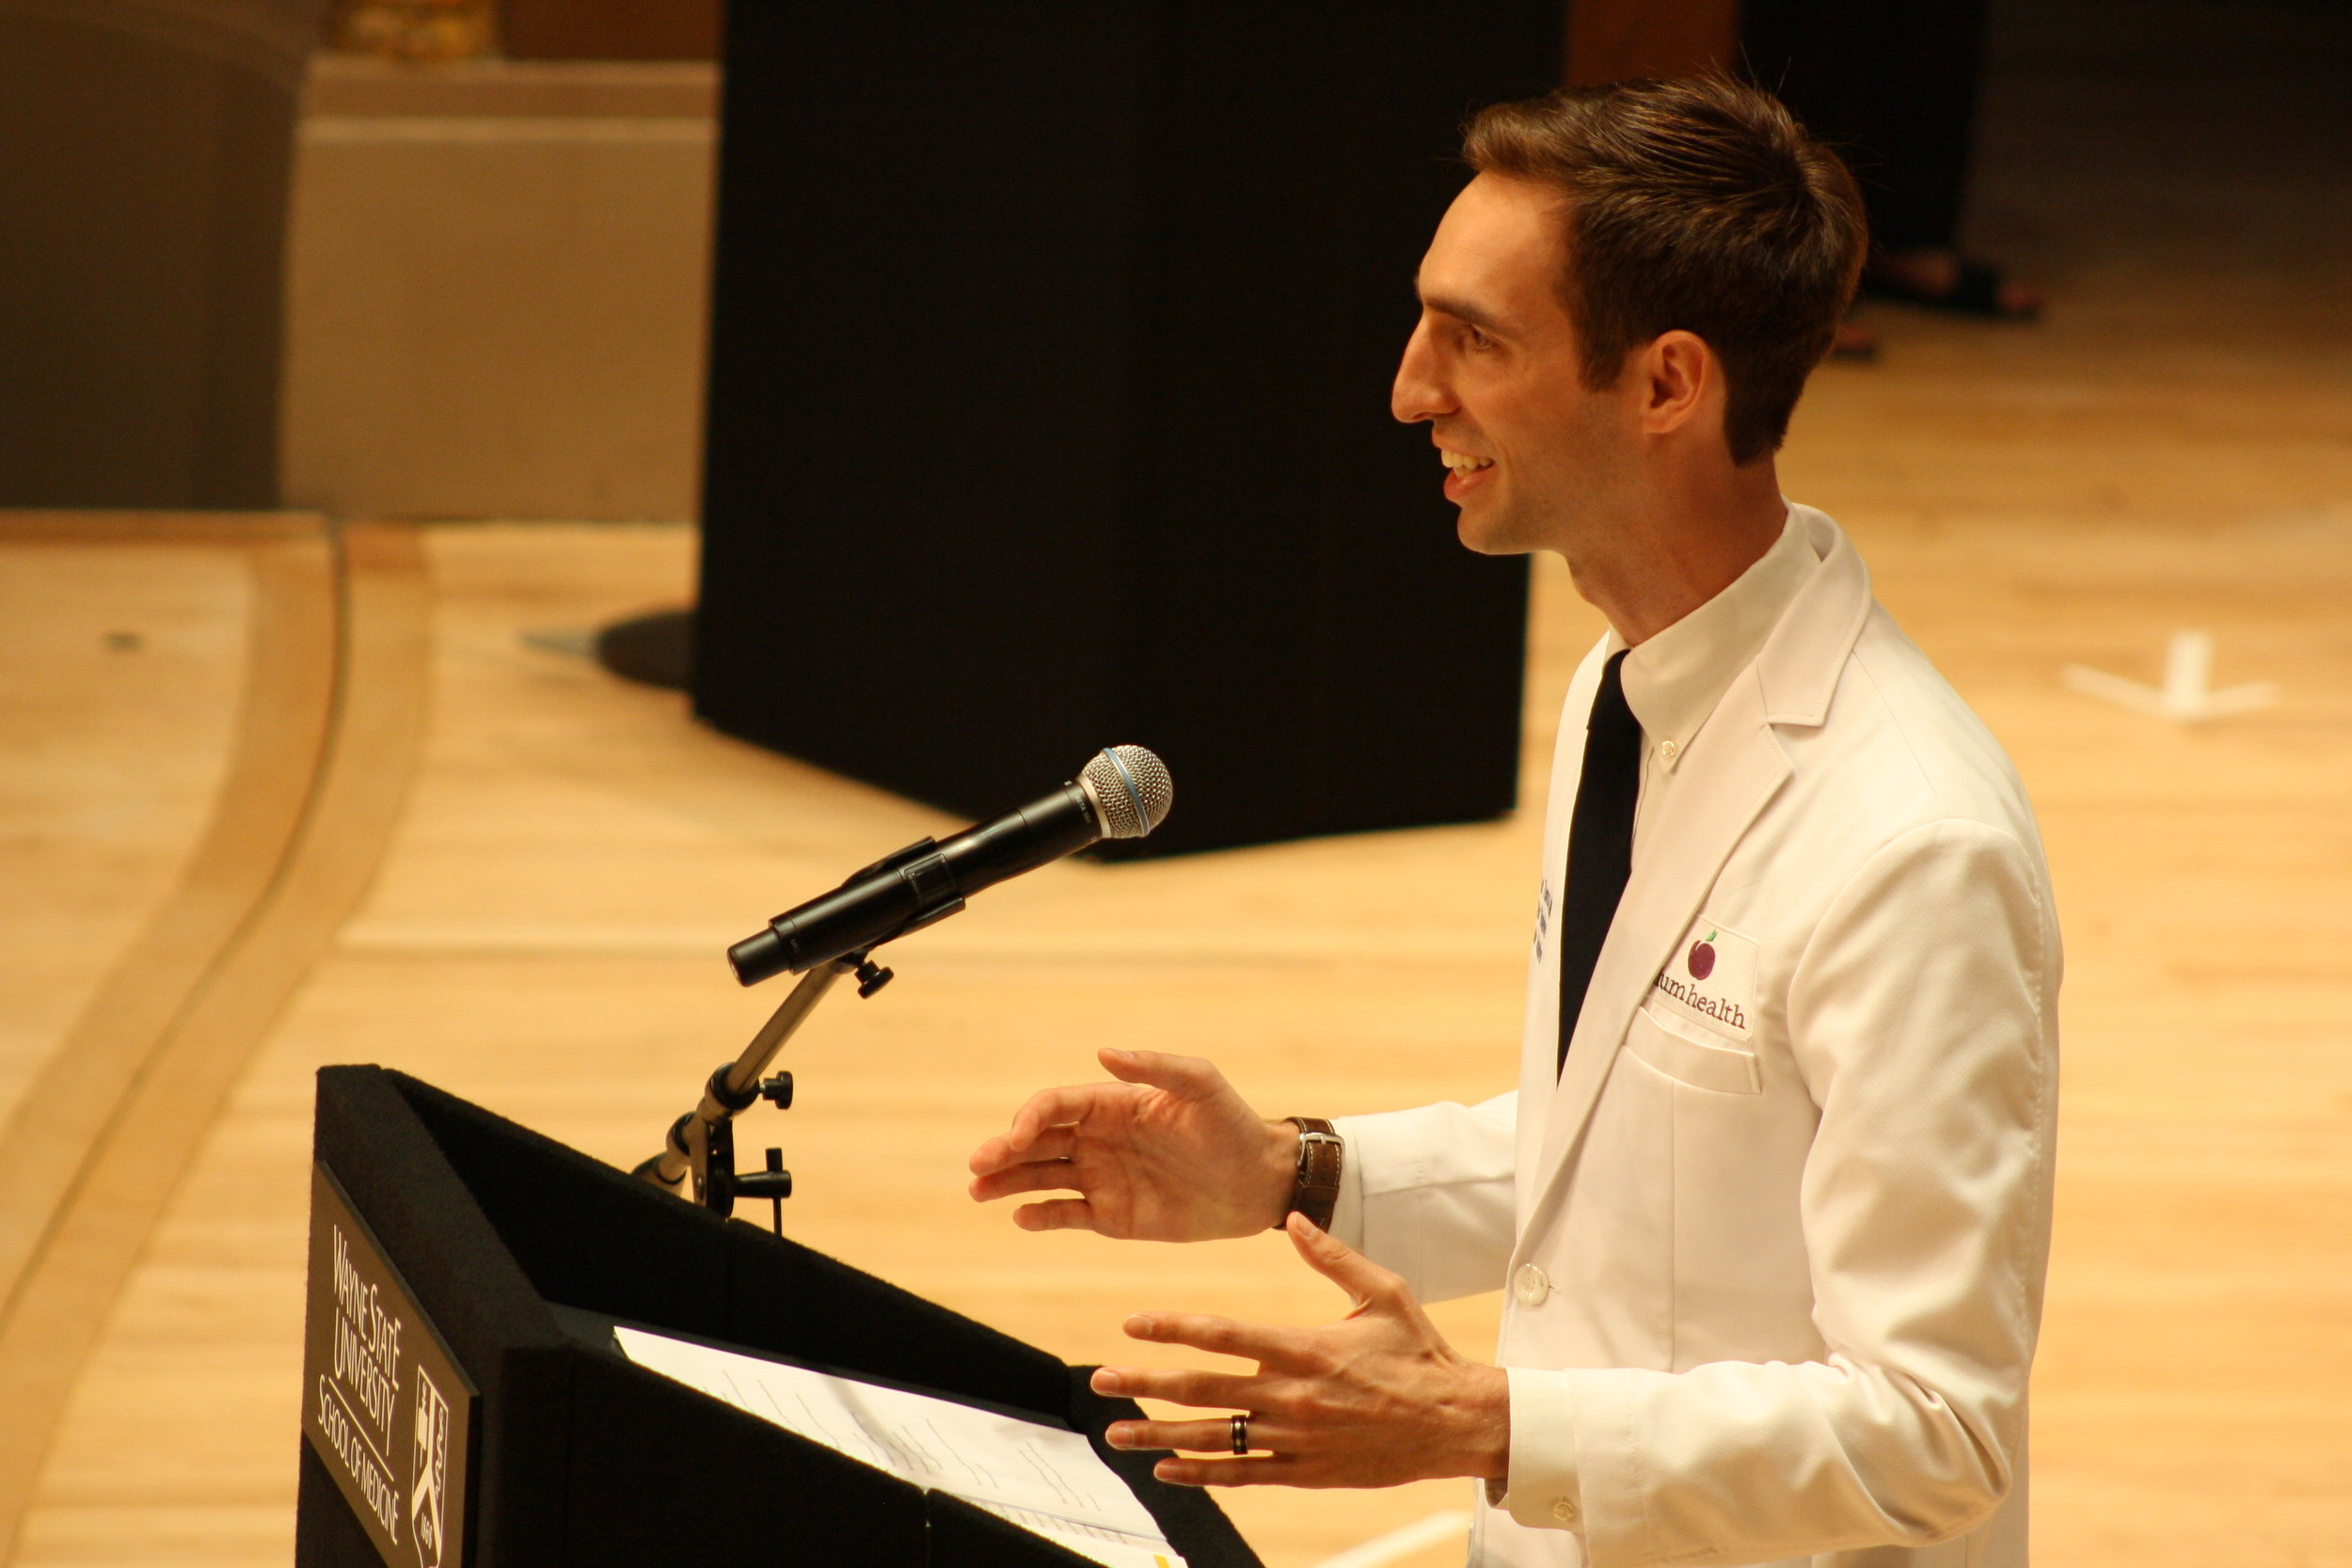 Paul Thomas MD White Coat Ceremony Detroit.JPG